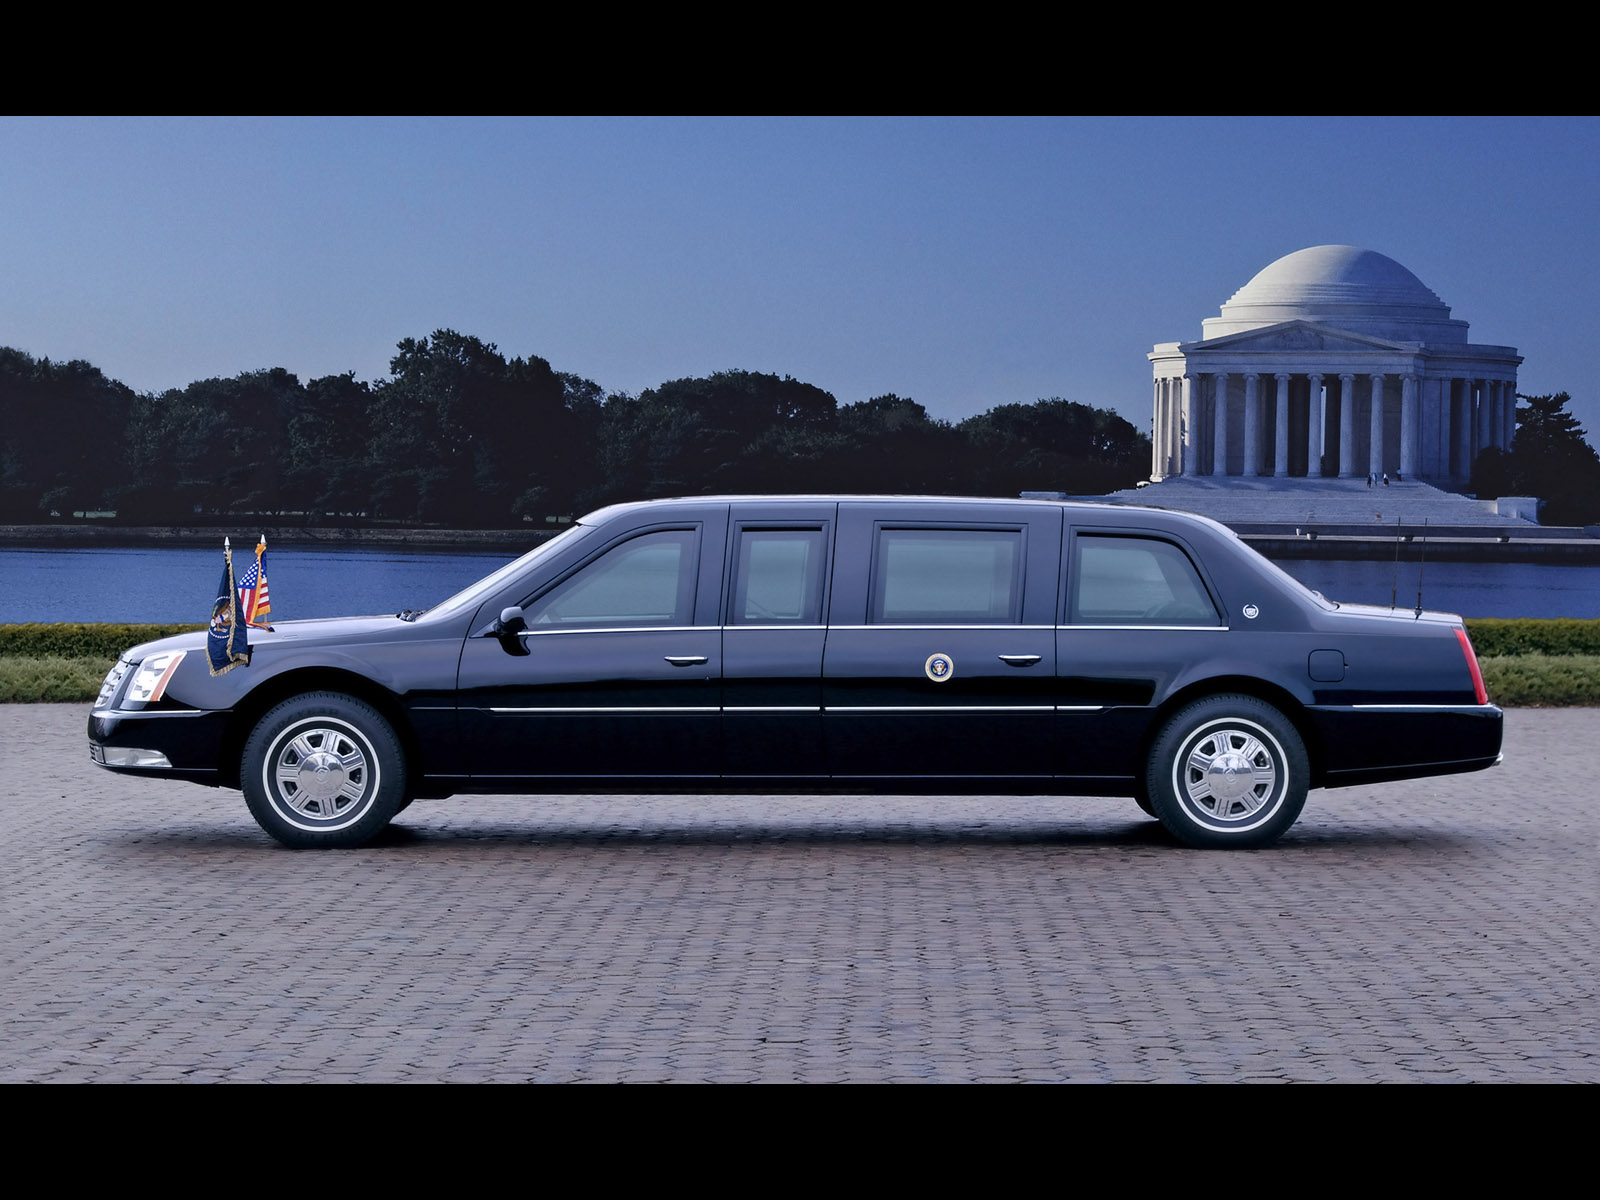 Cadillac DTS Presidential Limousine photo 19142